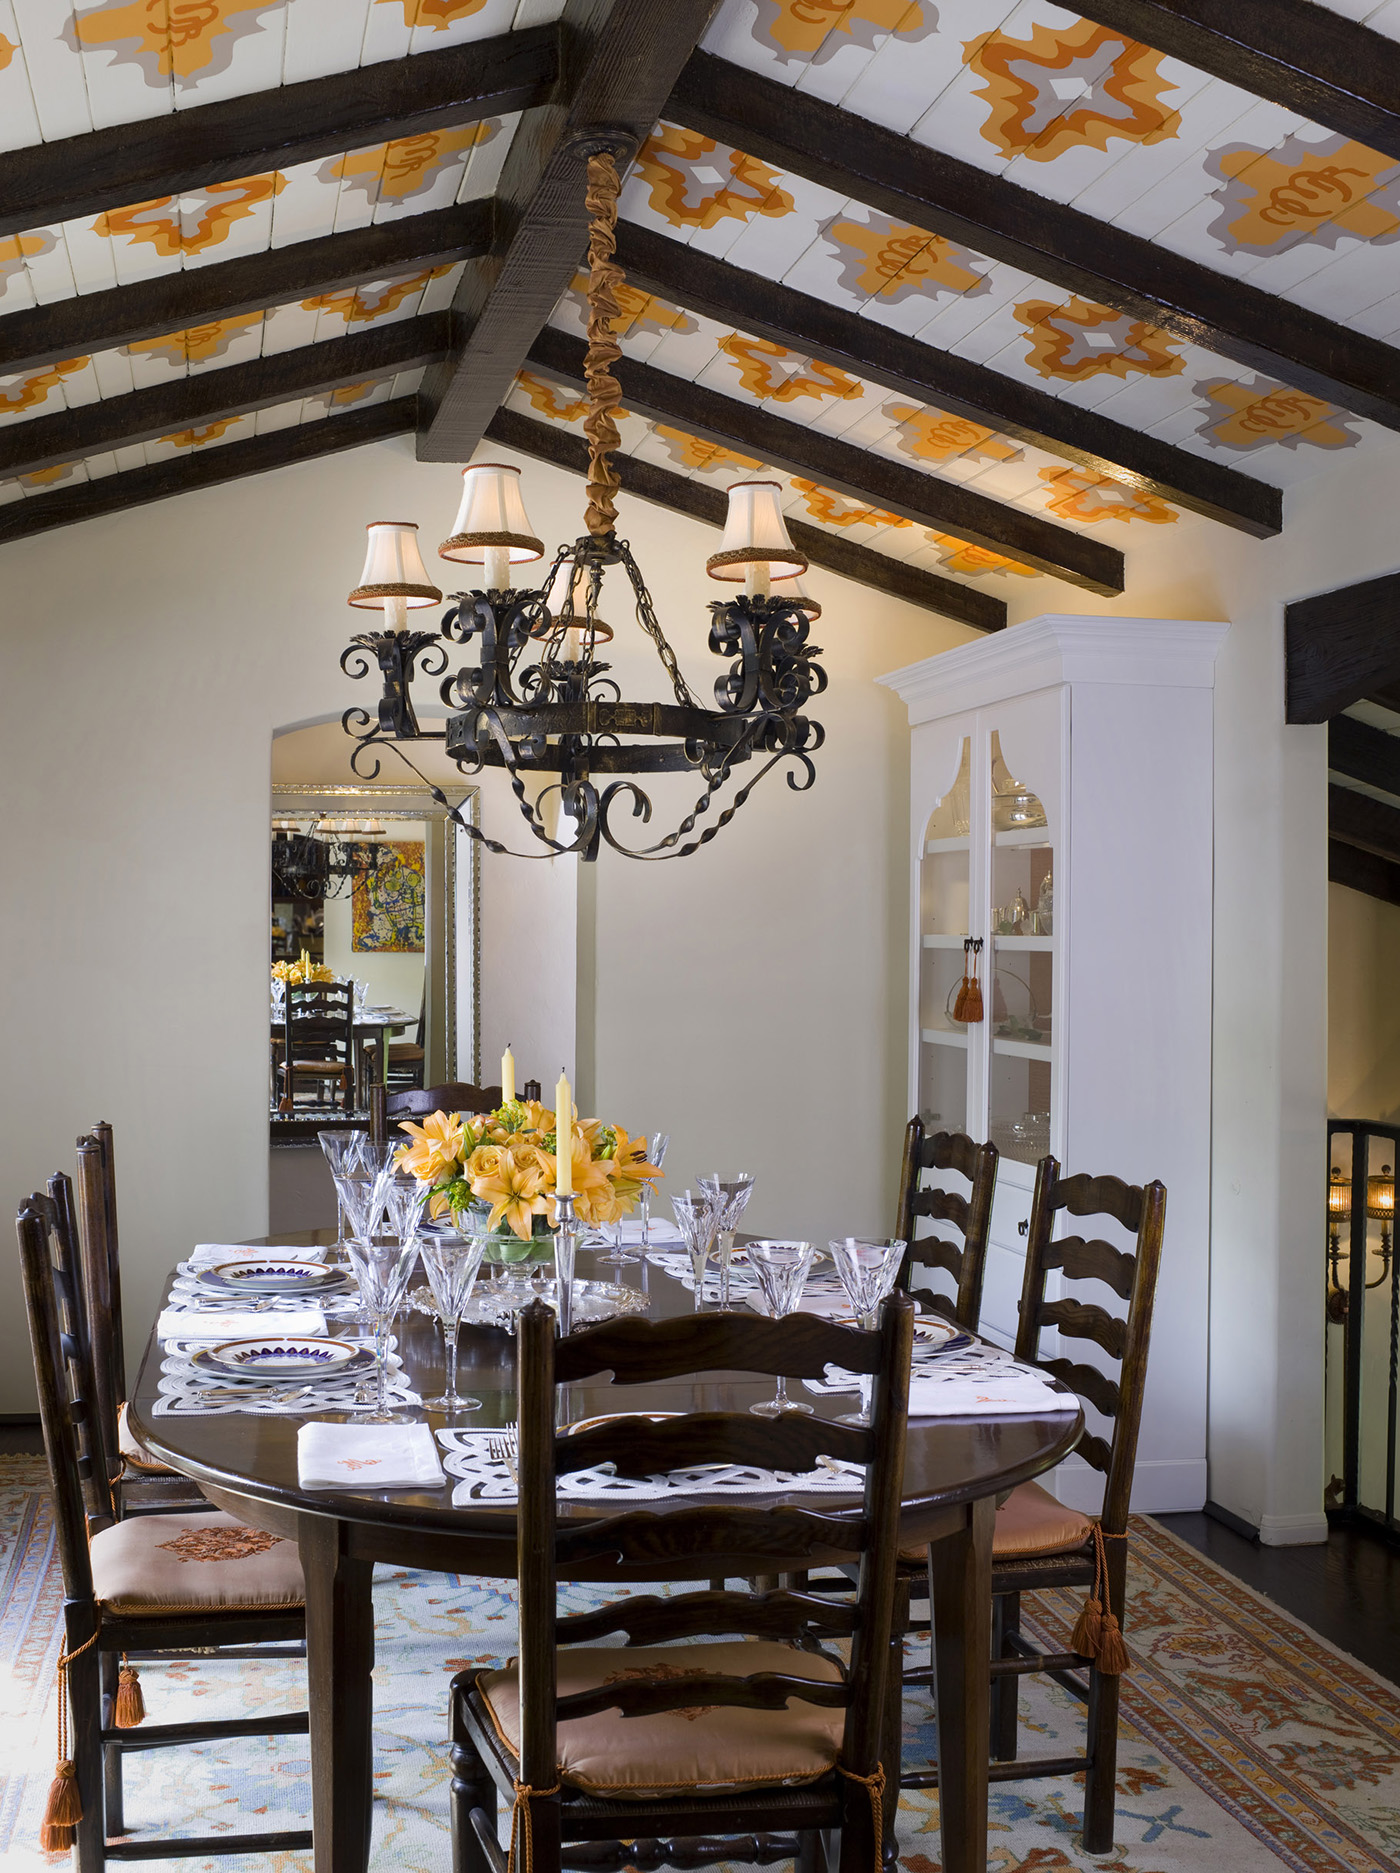 """The theme for this project was """"Austin Powers Goes to Spain."""" And we accomplished that Hip Hacienda style by infusing theme into every minute detail: Can you say throwback? We utilized some Beaded trim on the tassels, and the detailed ceilings are among our favorite architectural details."""